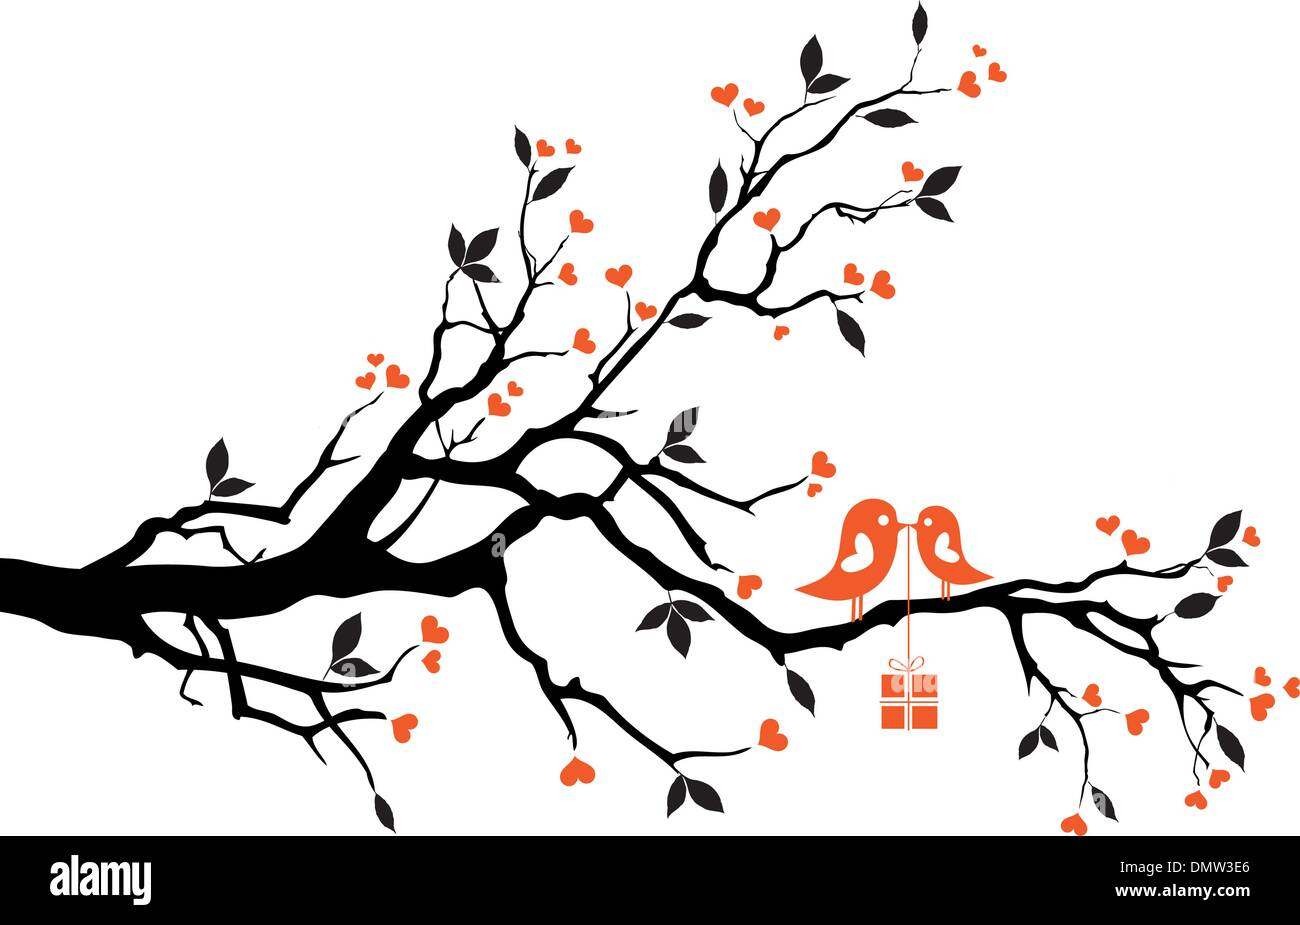 love bird with gift box, vector - Stock Image